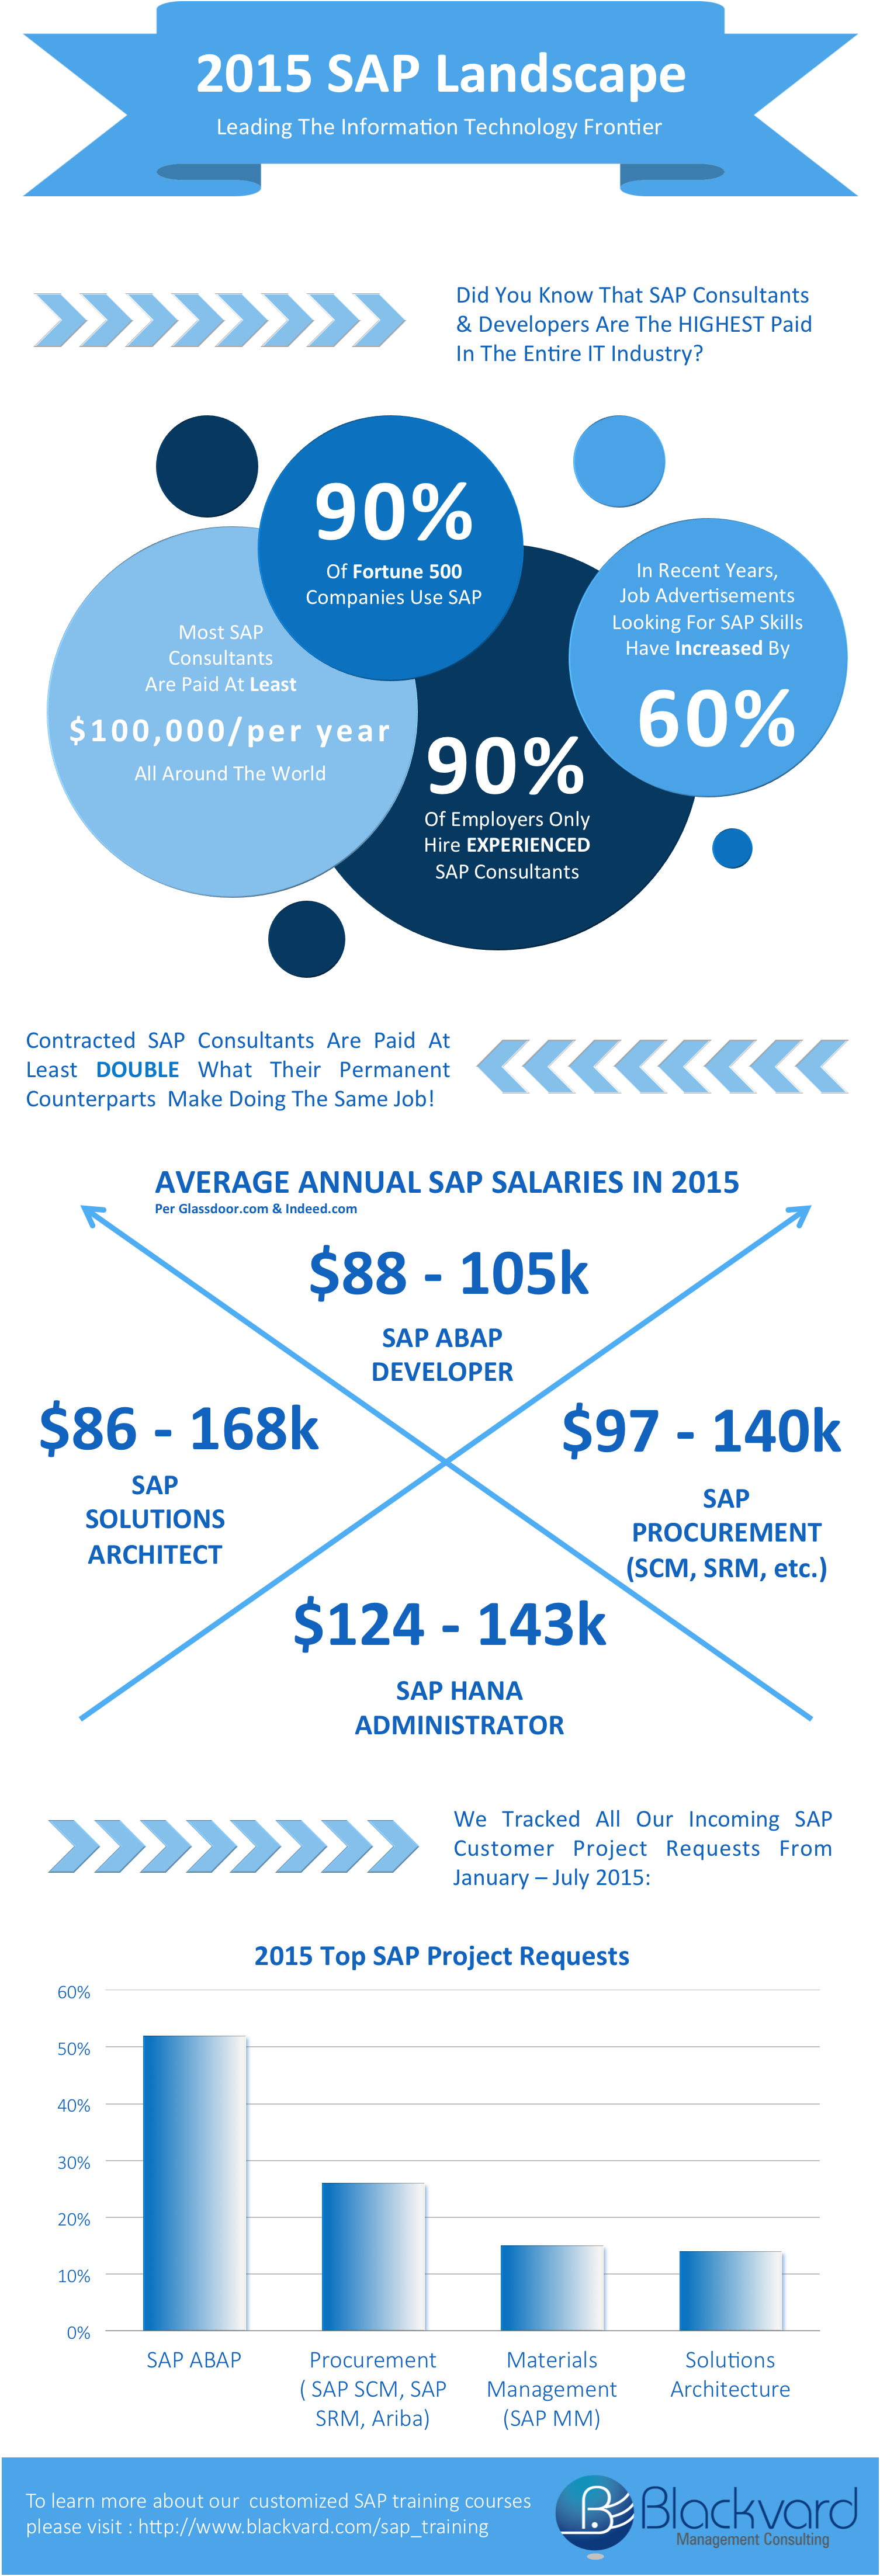 How Much Do SAP Jobs Make